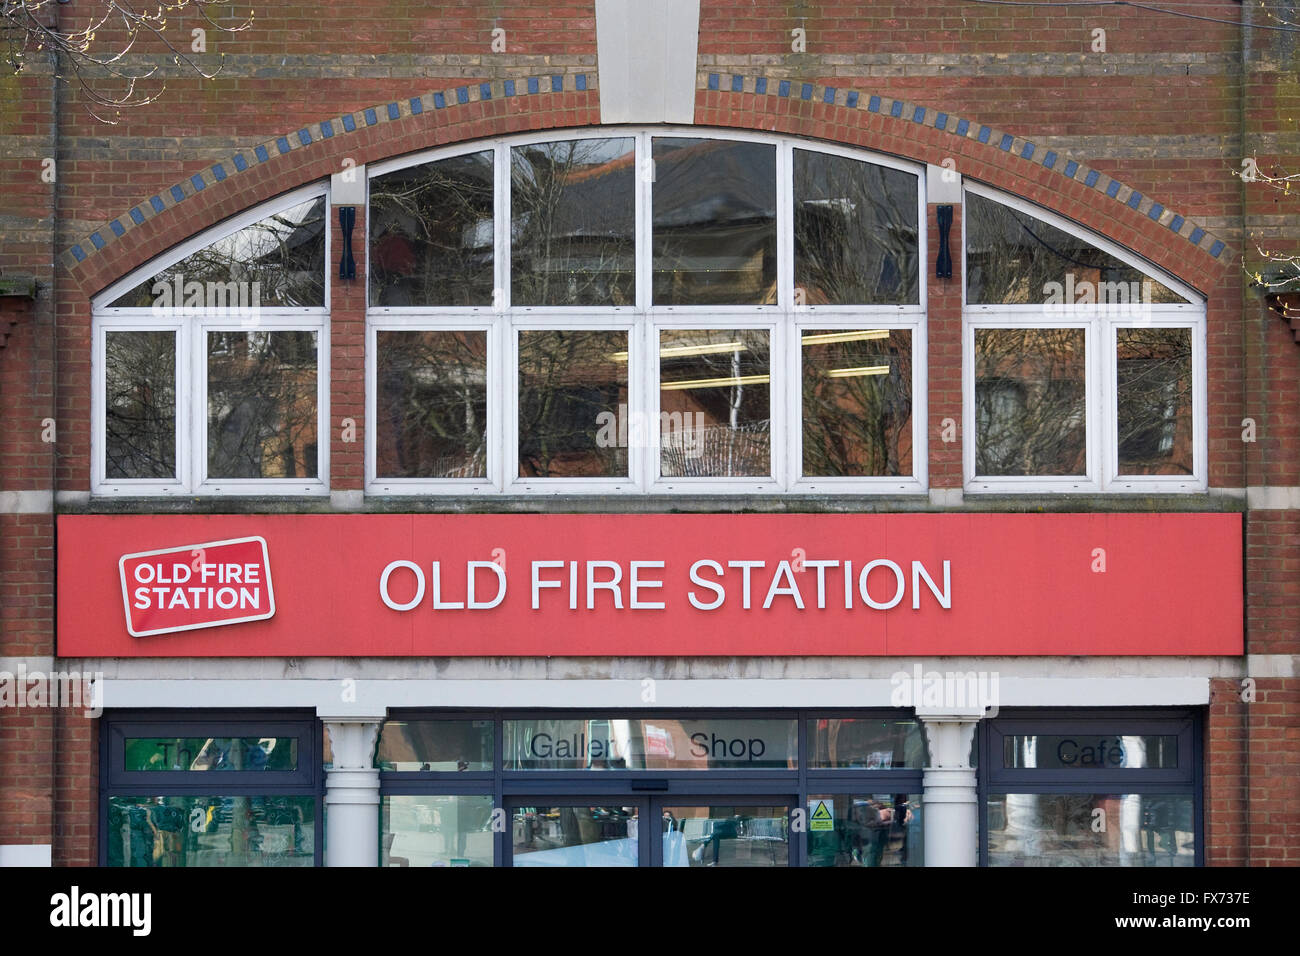 Frontage of The Old Fire Station in Oxford. - Stock Image